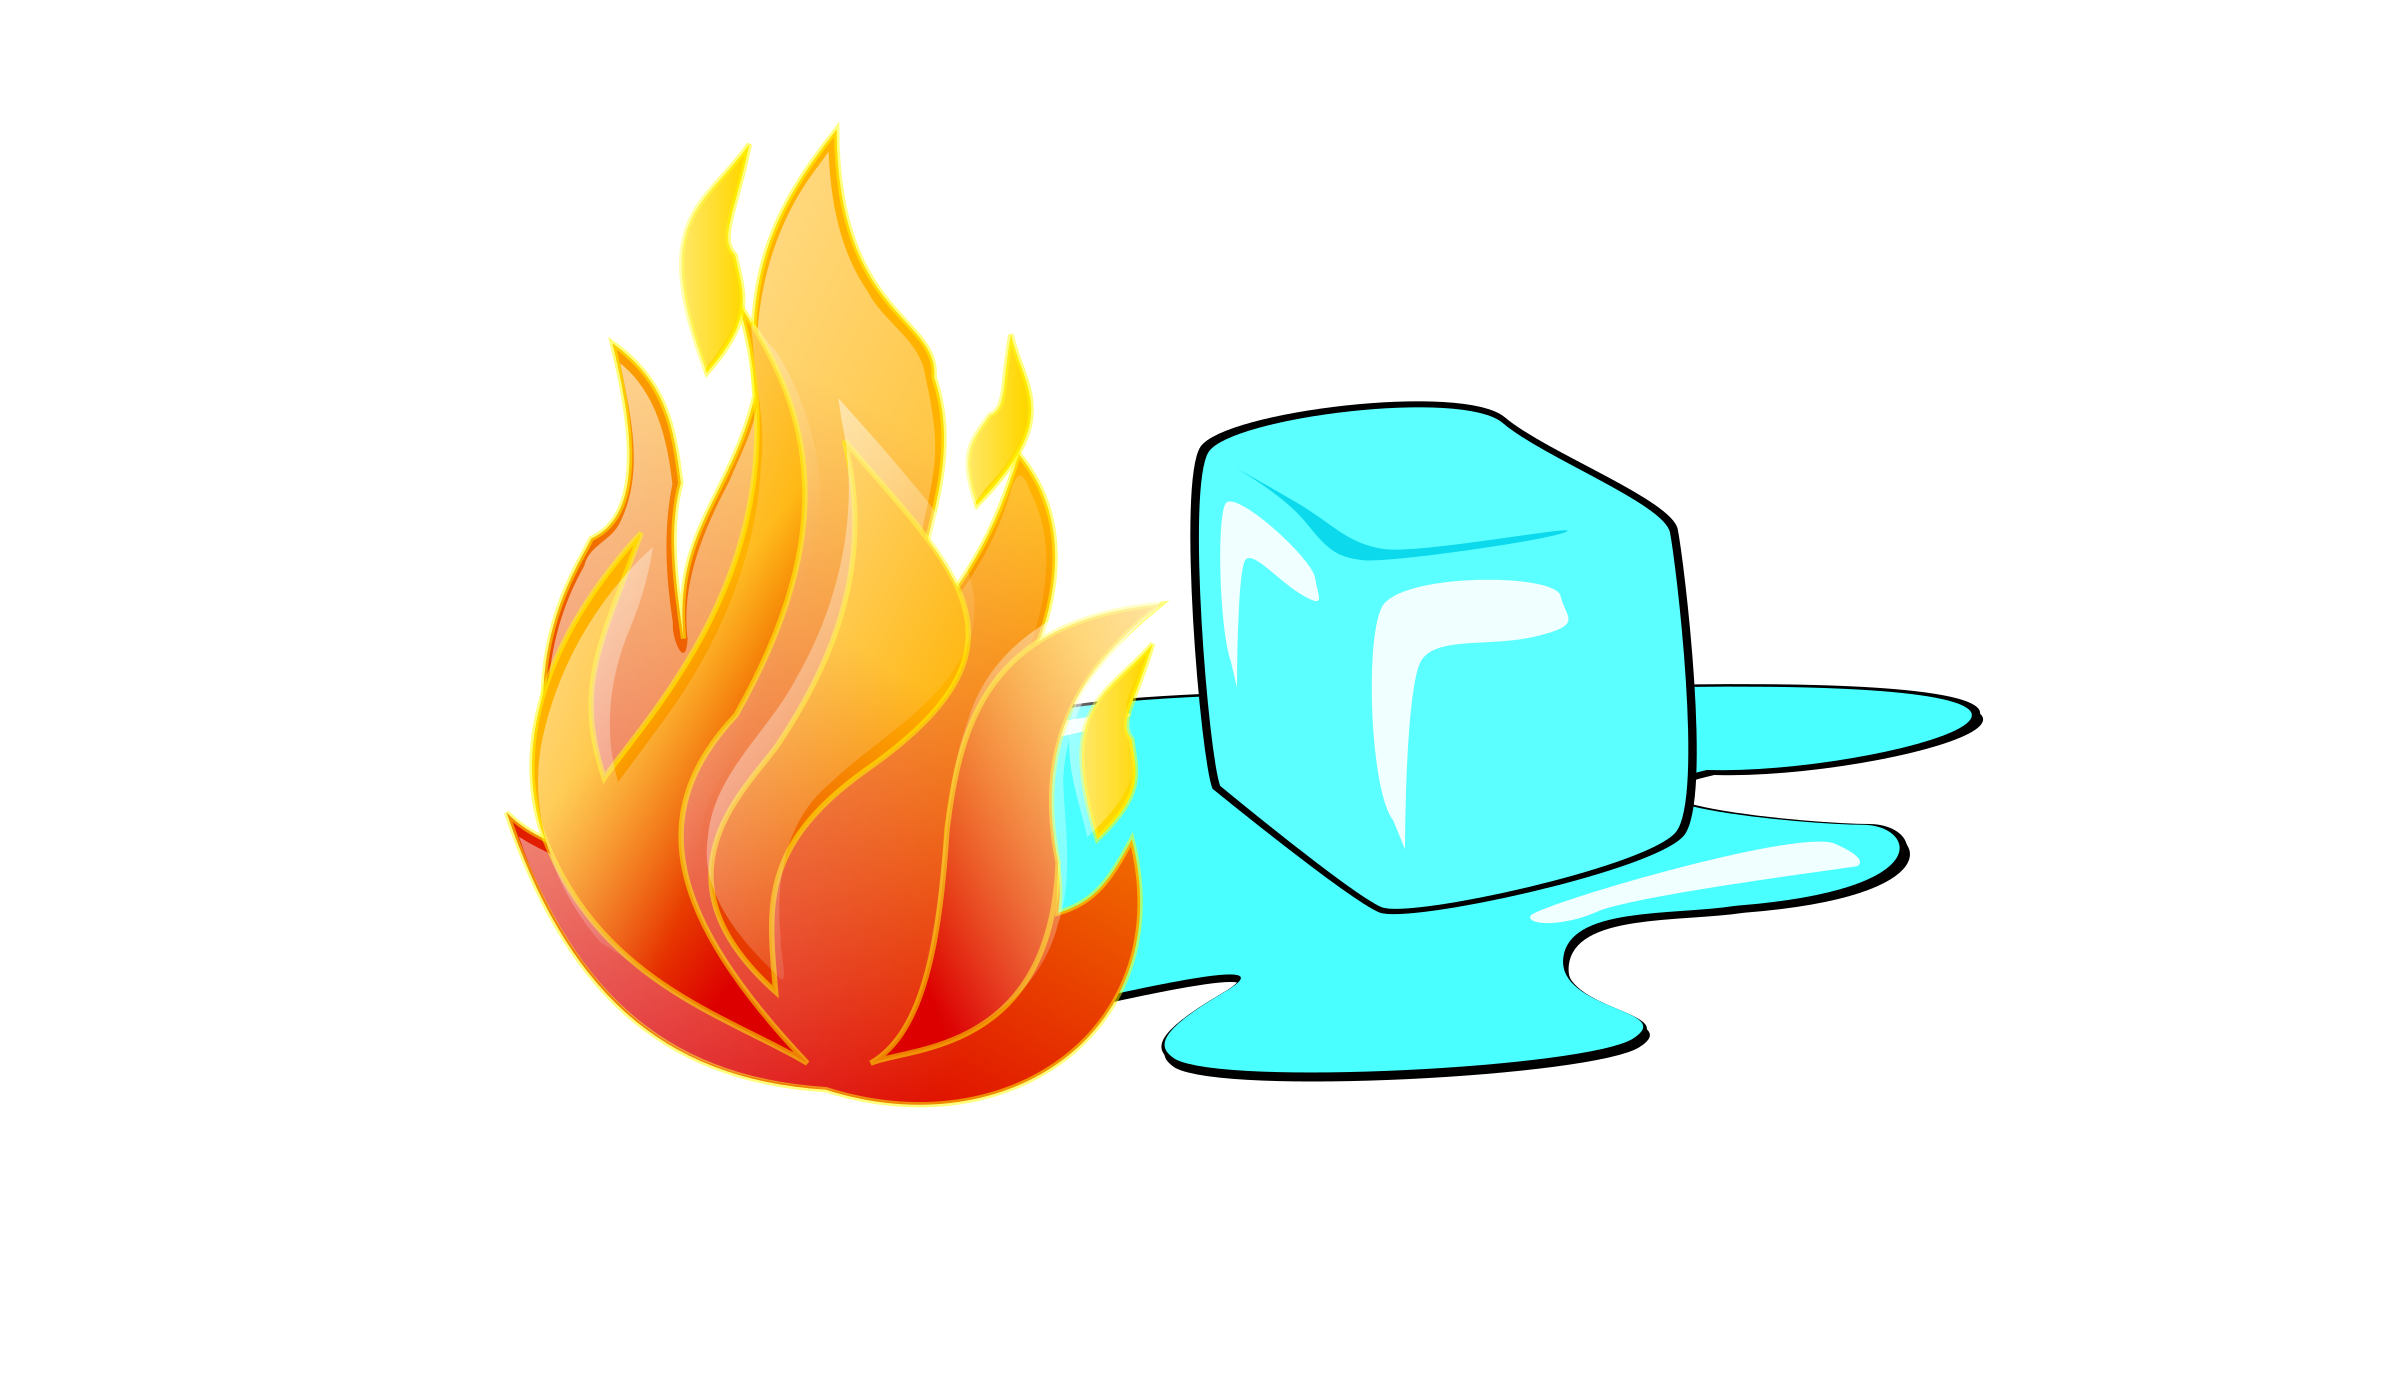 And ice encode to. Clipart waves fire